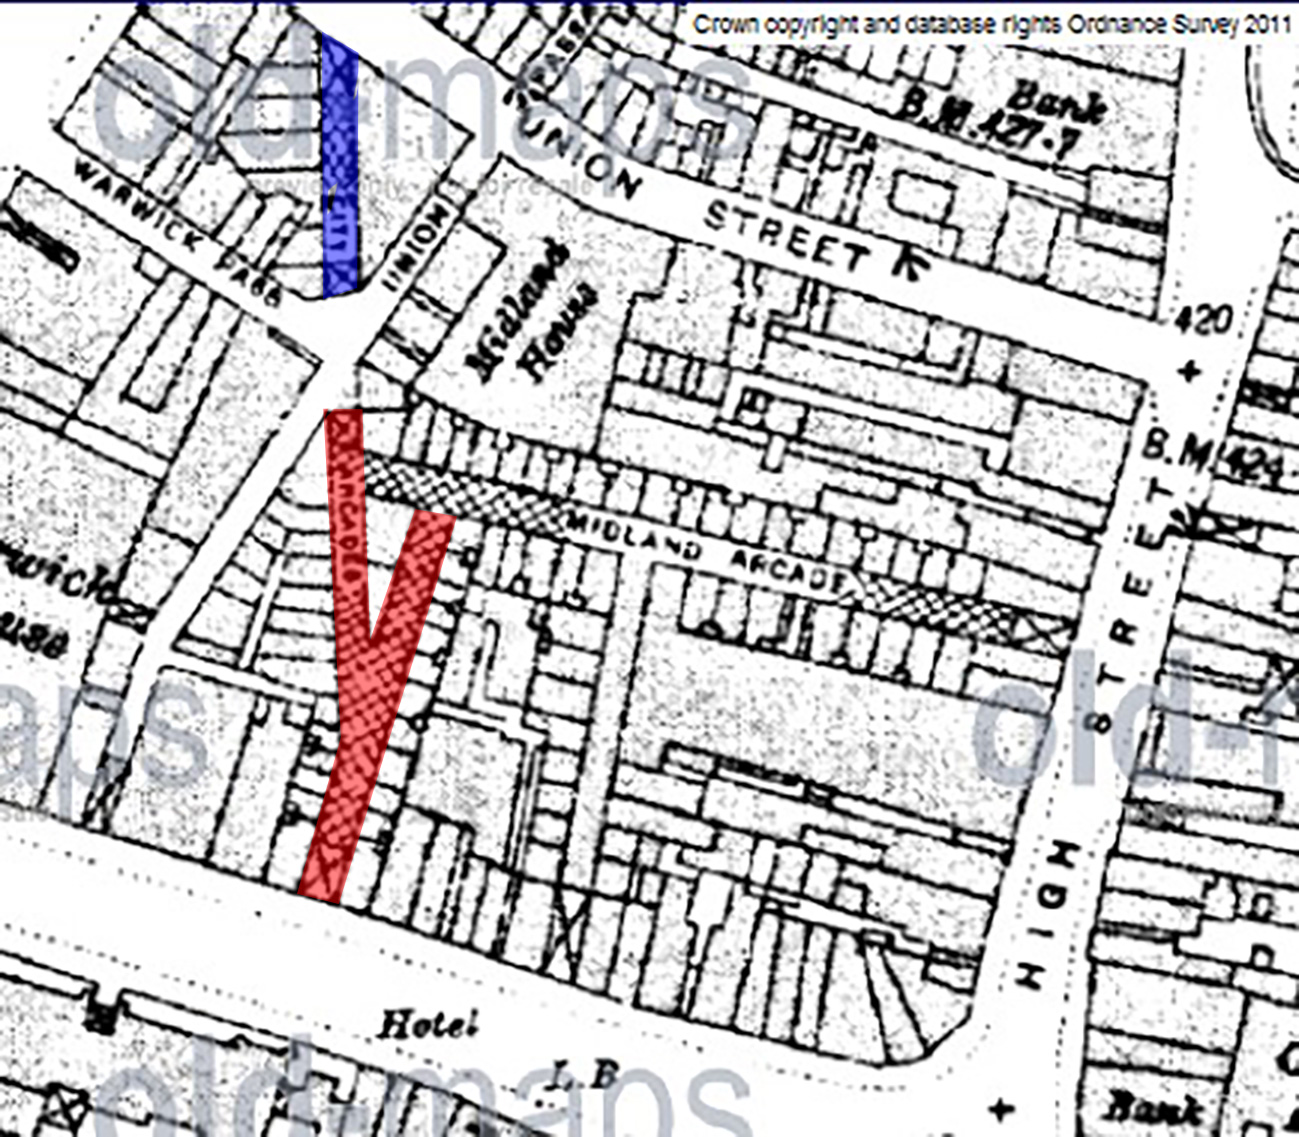 RED INDICATES THE DESTROY SECTION OF CITY ARCADE AND BLUE INDICATES THE REMAINING SECTION